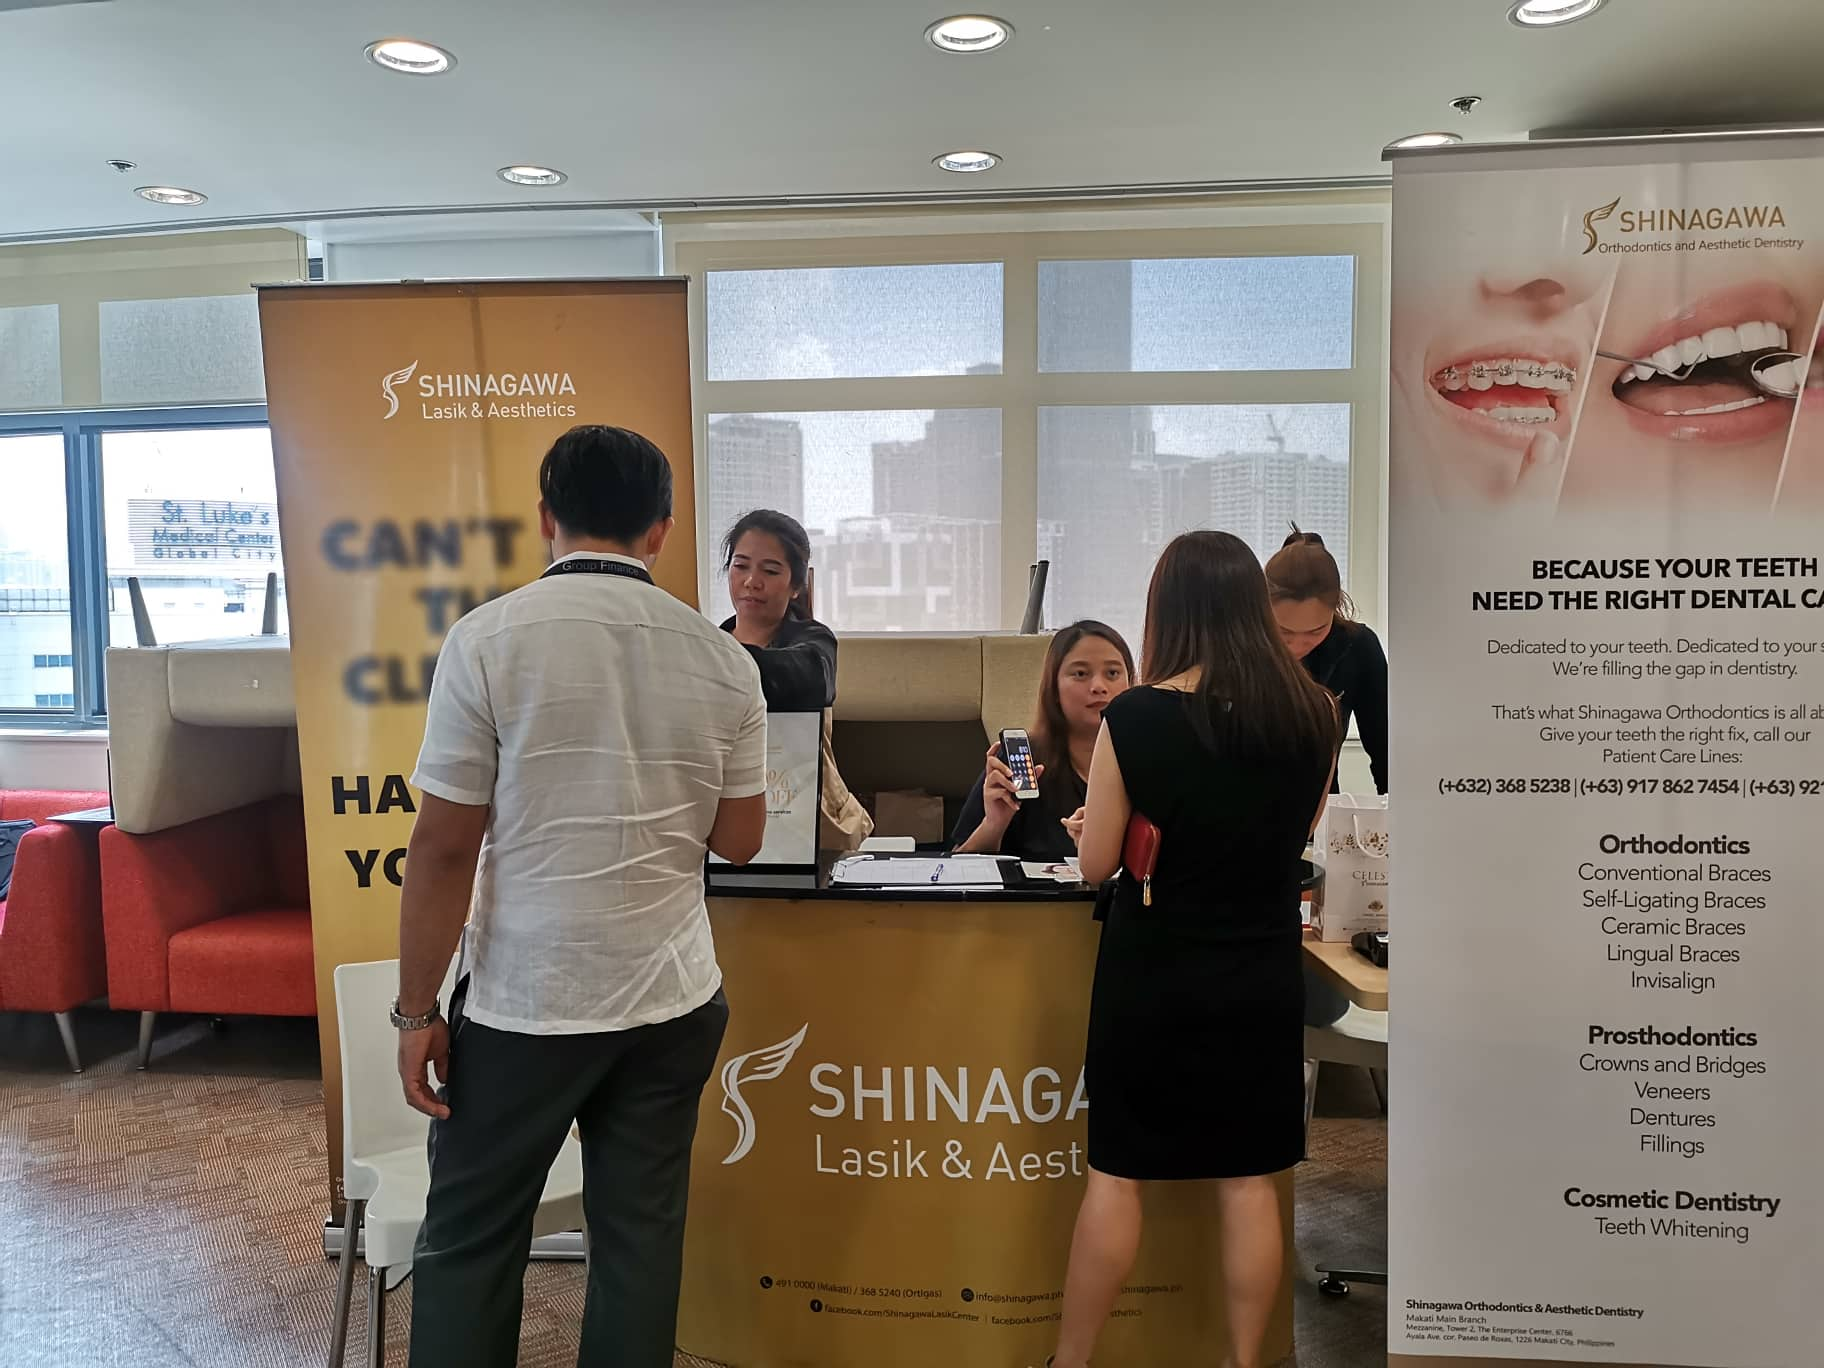 Shinagawa Lasik Center at Deutsche Bank 2019 | Shinagawa Feature Story